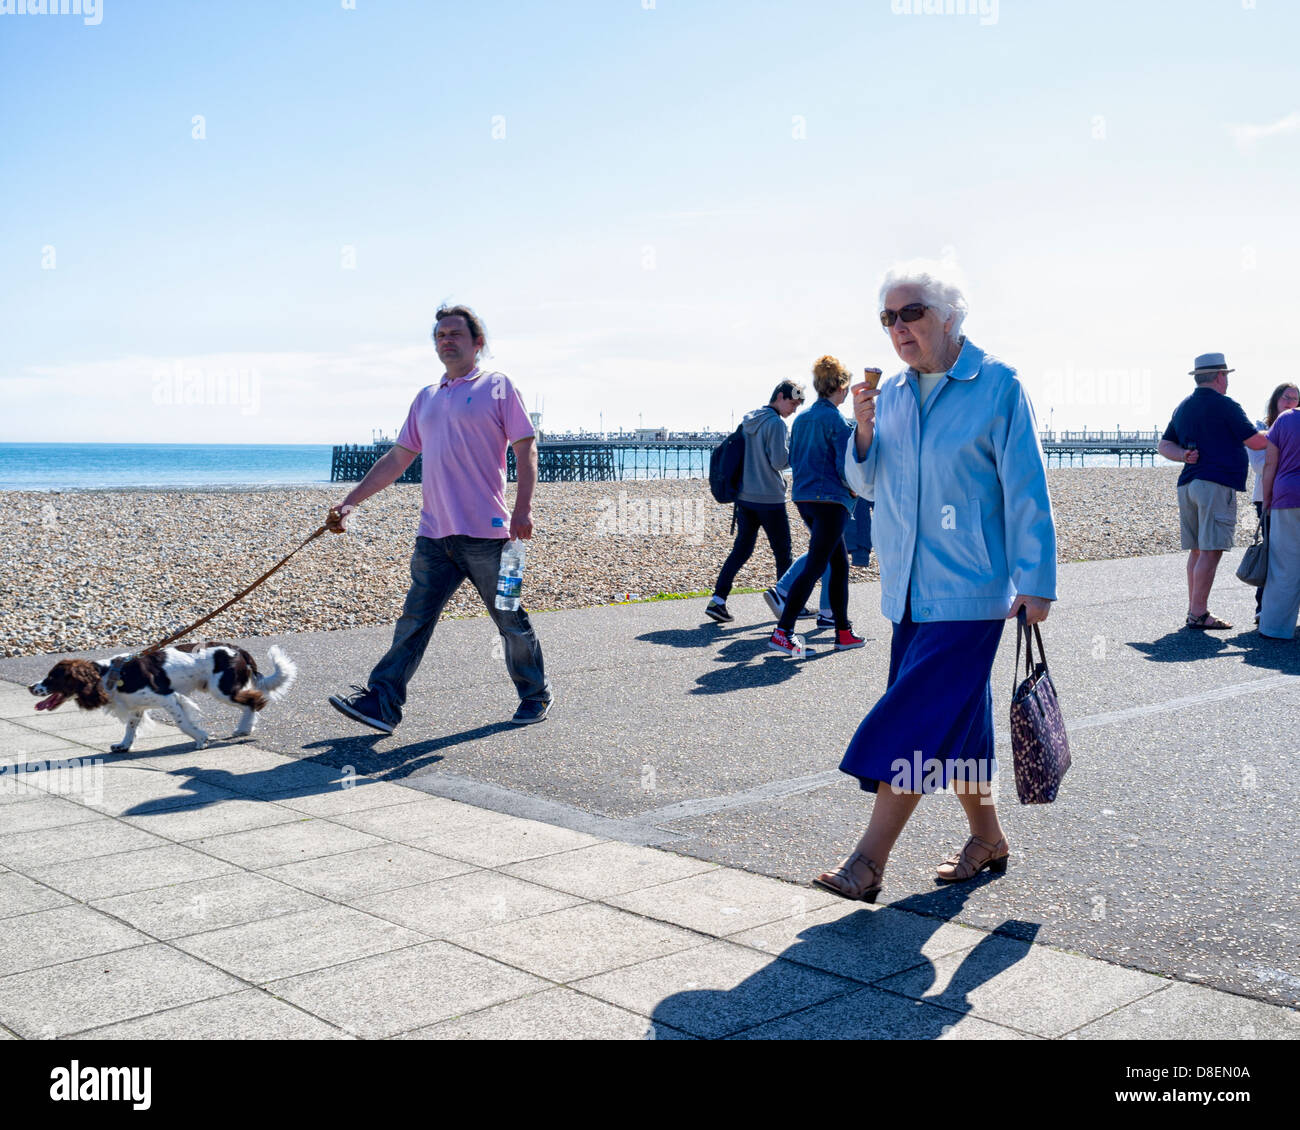 An elderly woman walks along a promenade eating an Ice cream on a hot day. Picture by Julie Edwards - Stock Image